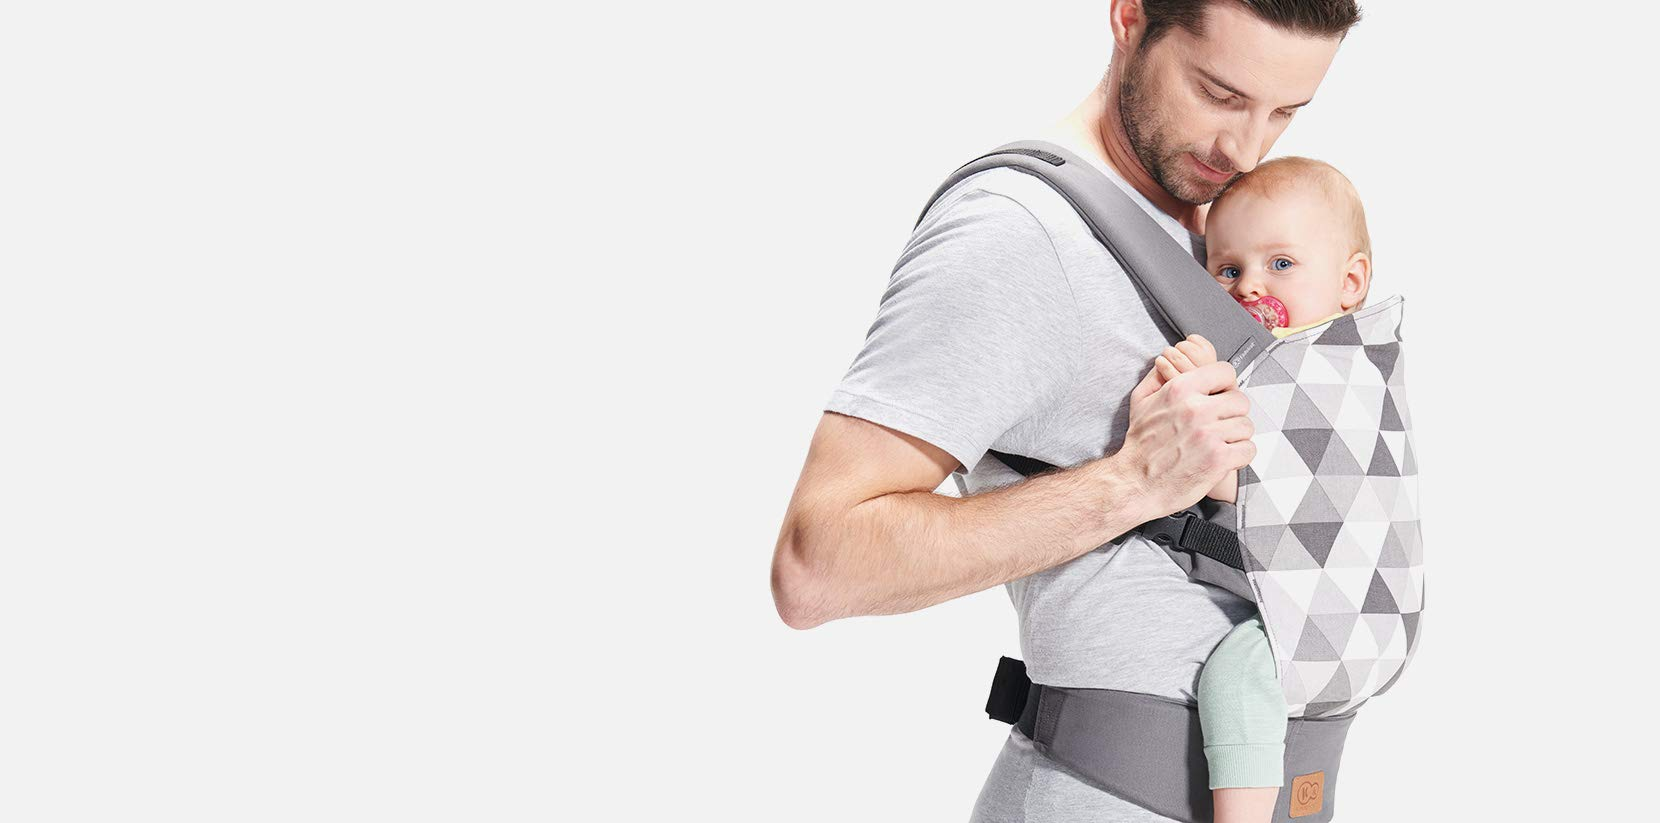 kk Kinderkraft Nino Ergonomic Baby Carrier Front Gray kk KinderKraft Thanks to a special, well-profiled layer, the baby's head does not tilt Ergonomic baby carrier for children aged from 3 months up to 20 kg The compact baby carrier can be folded to a small size and weighs only 0.39 kg 11